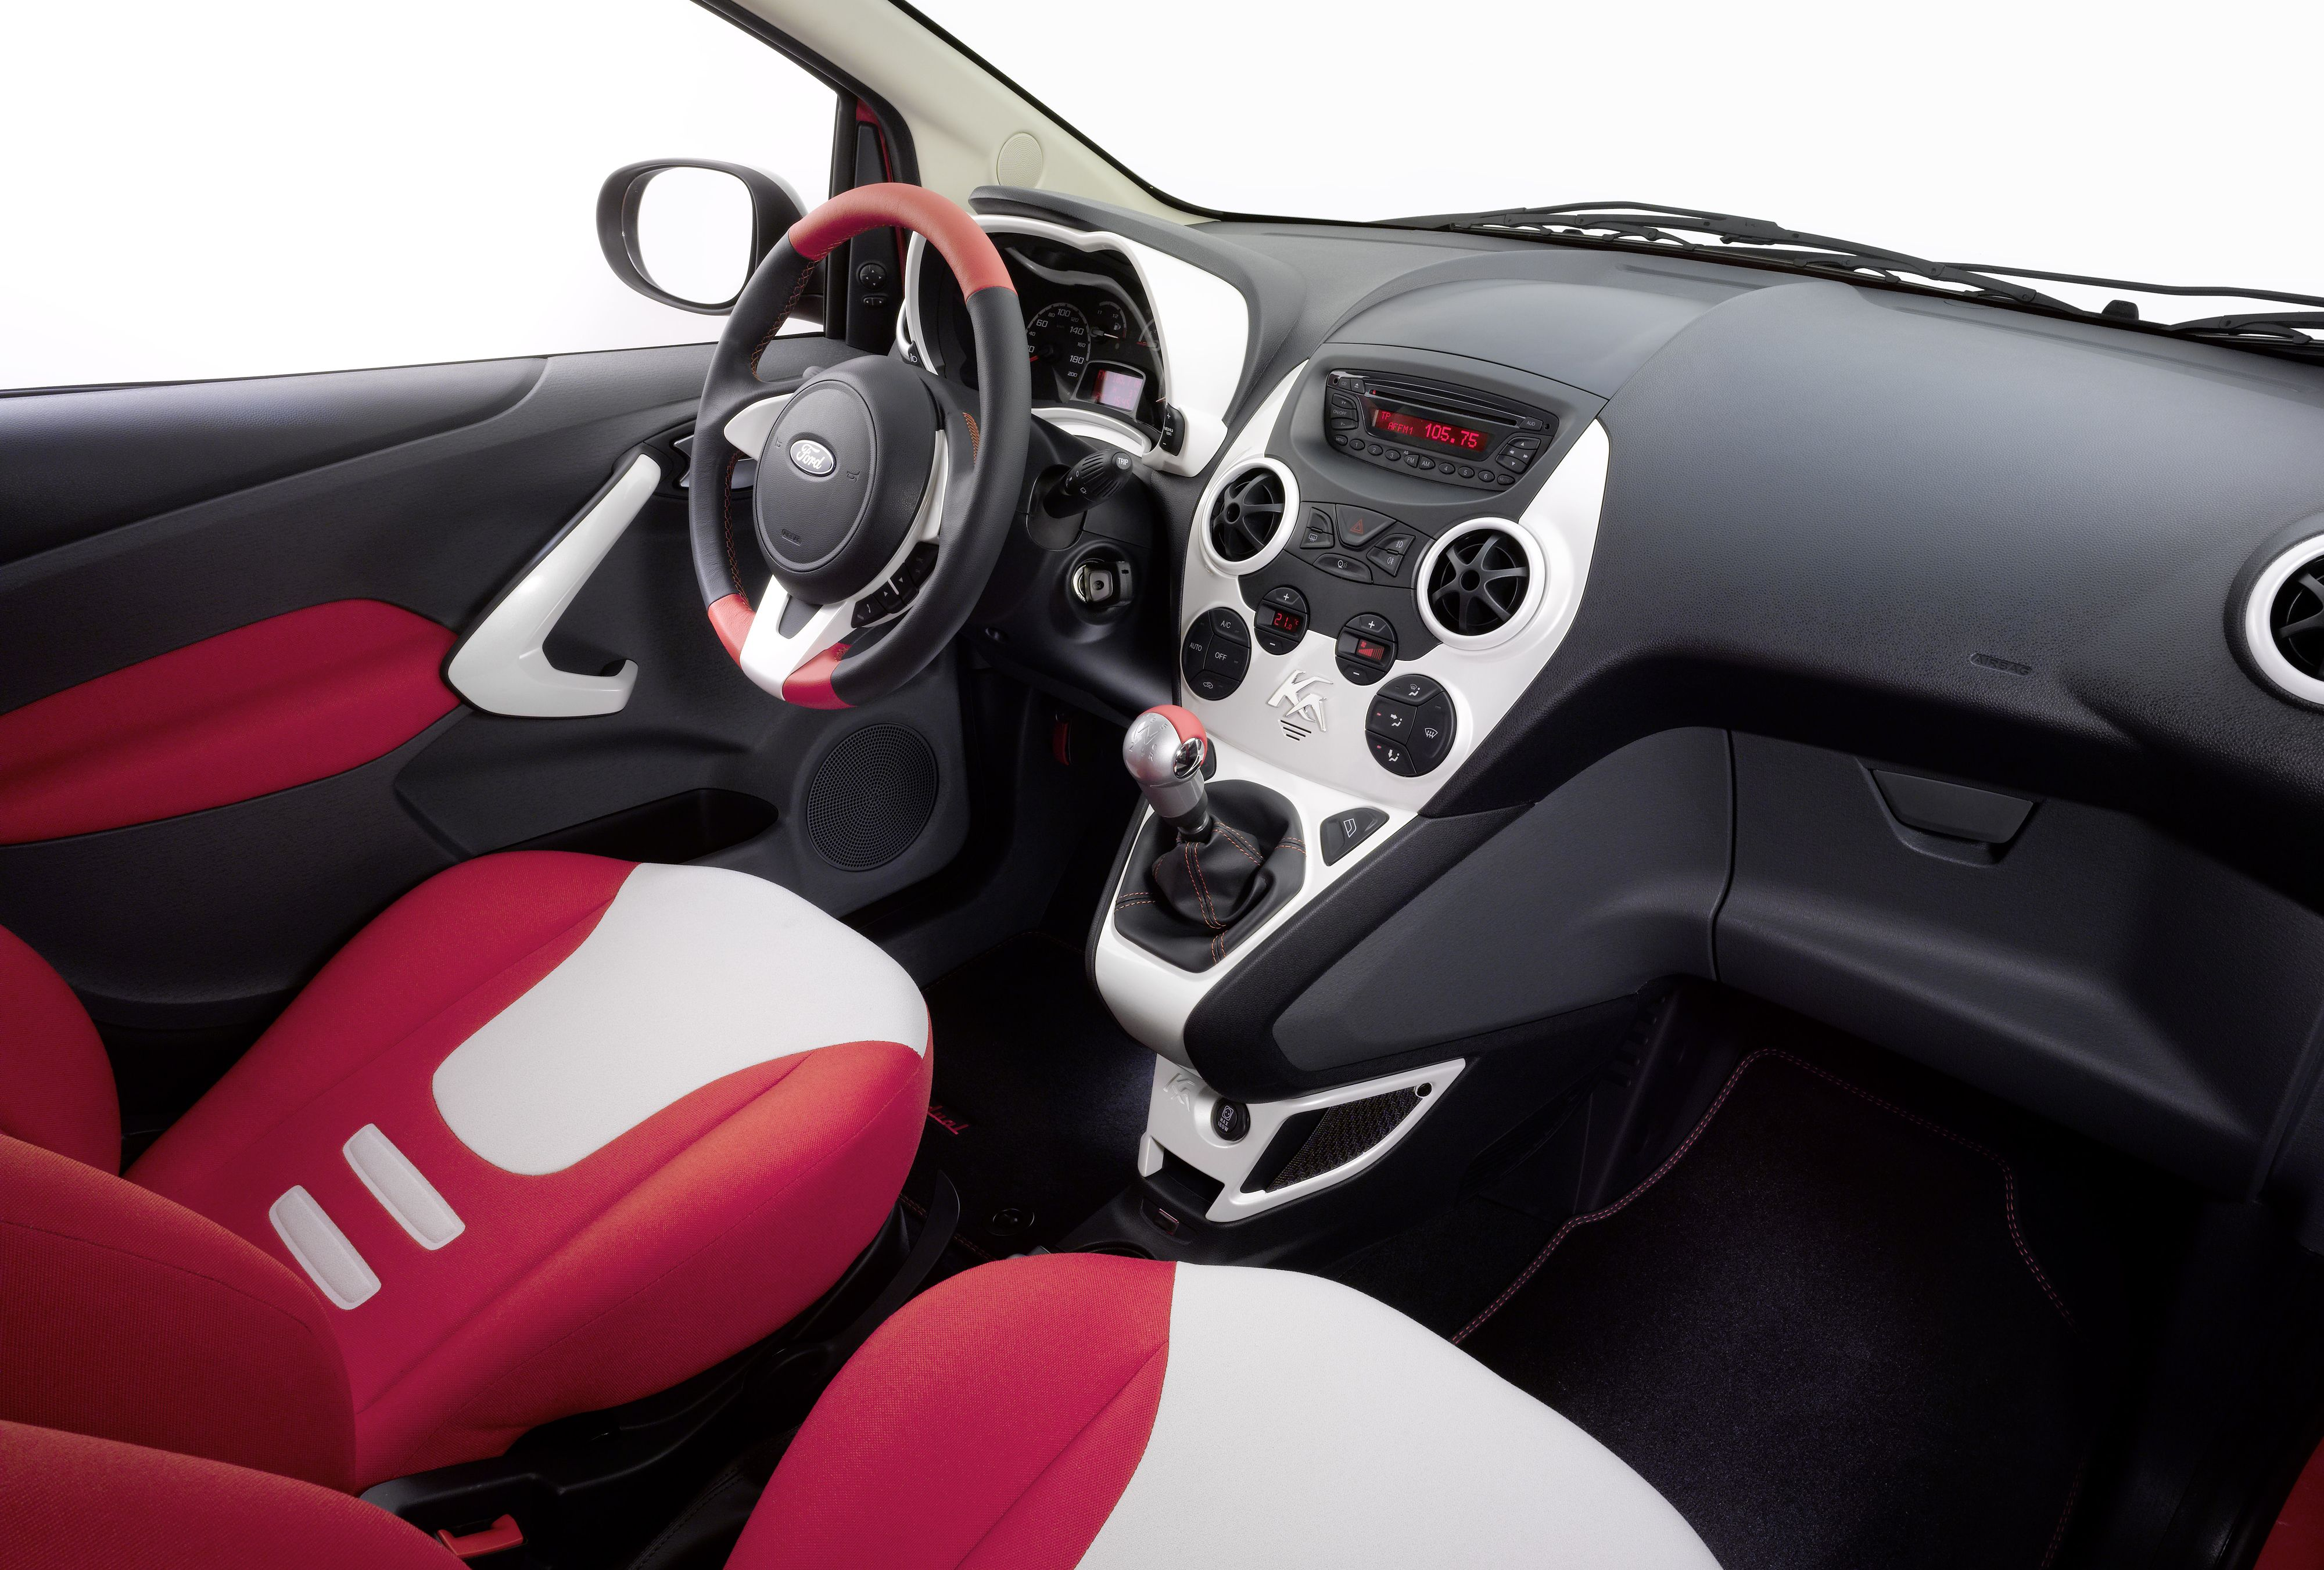 Ford Ka Interior Factory Issued Press Photo Germany 2008 In 2020